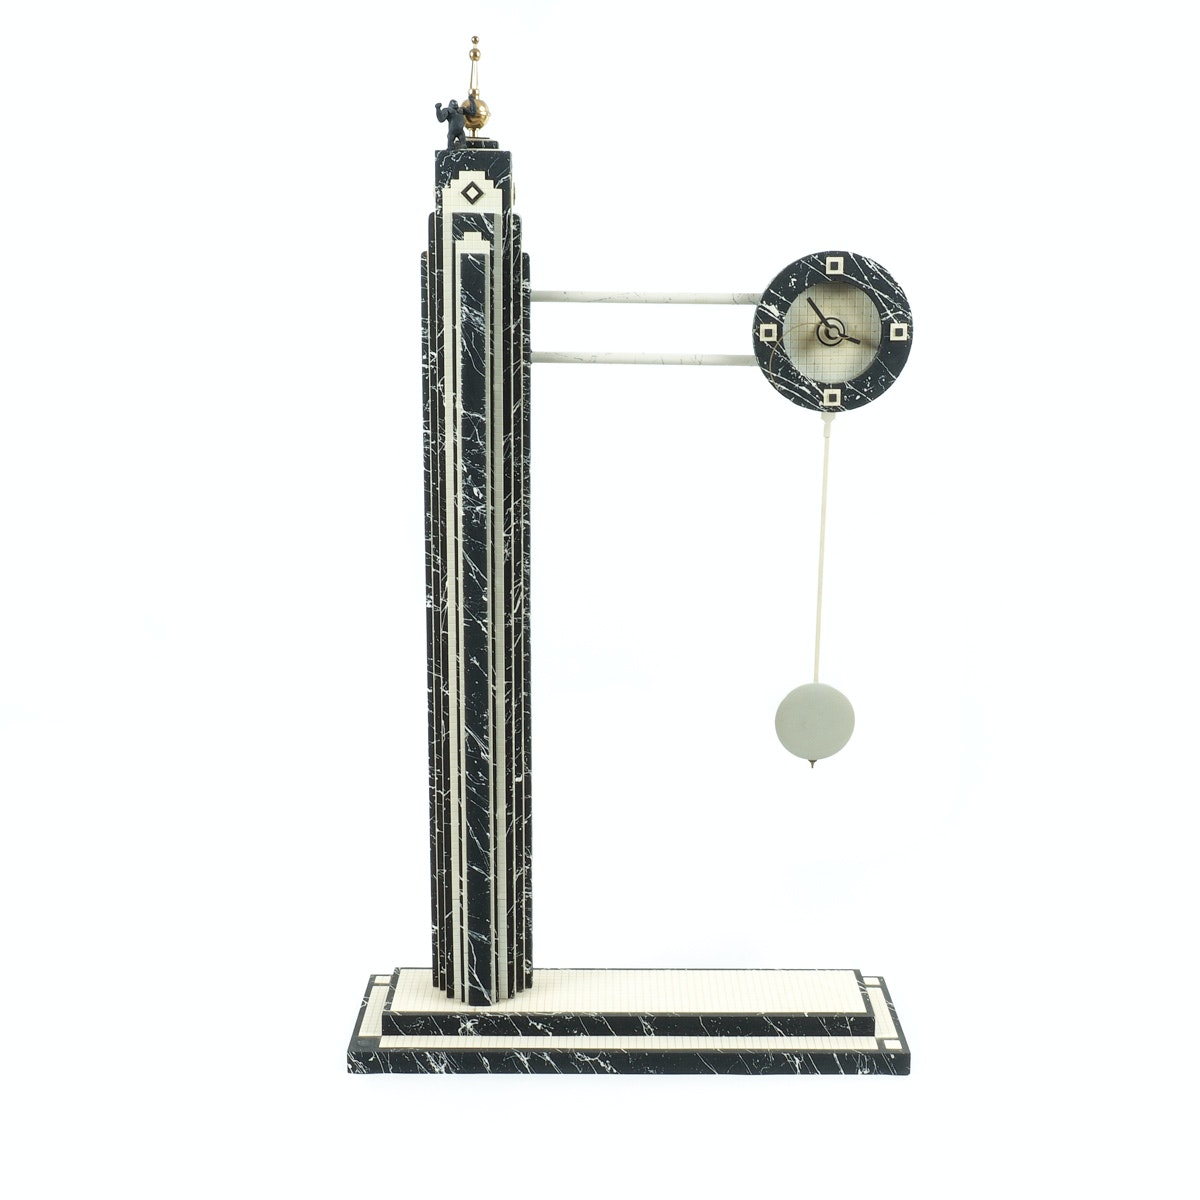 King Kong Empire State Building Clock Sculpture